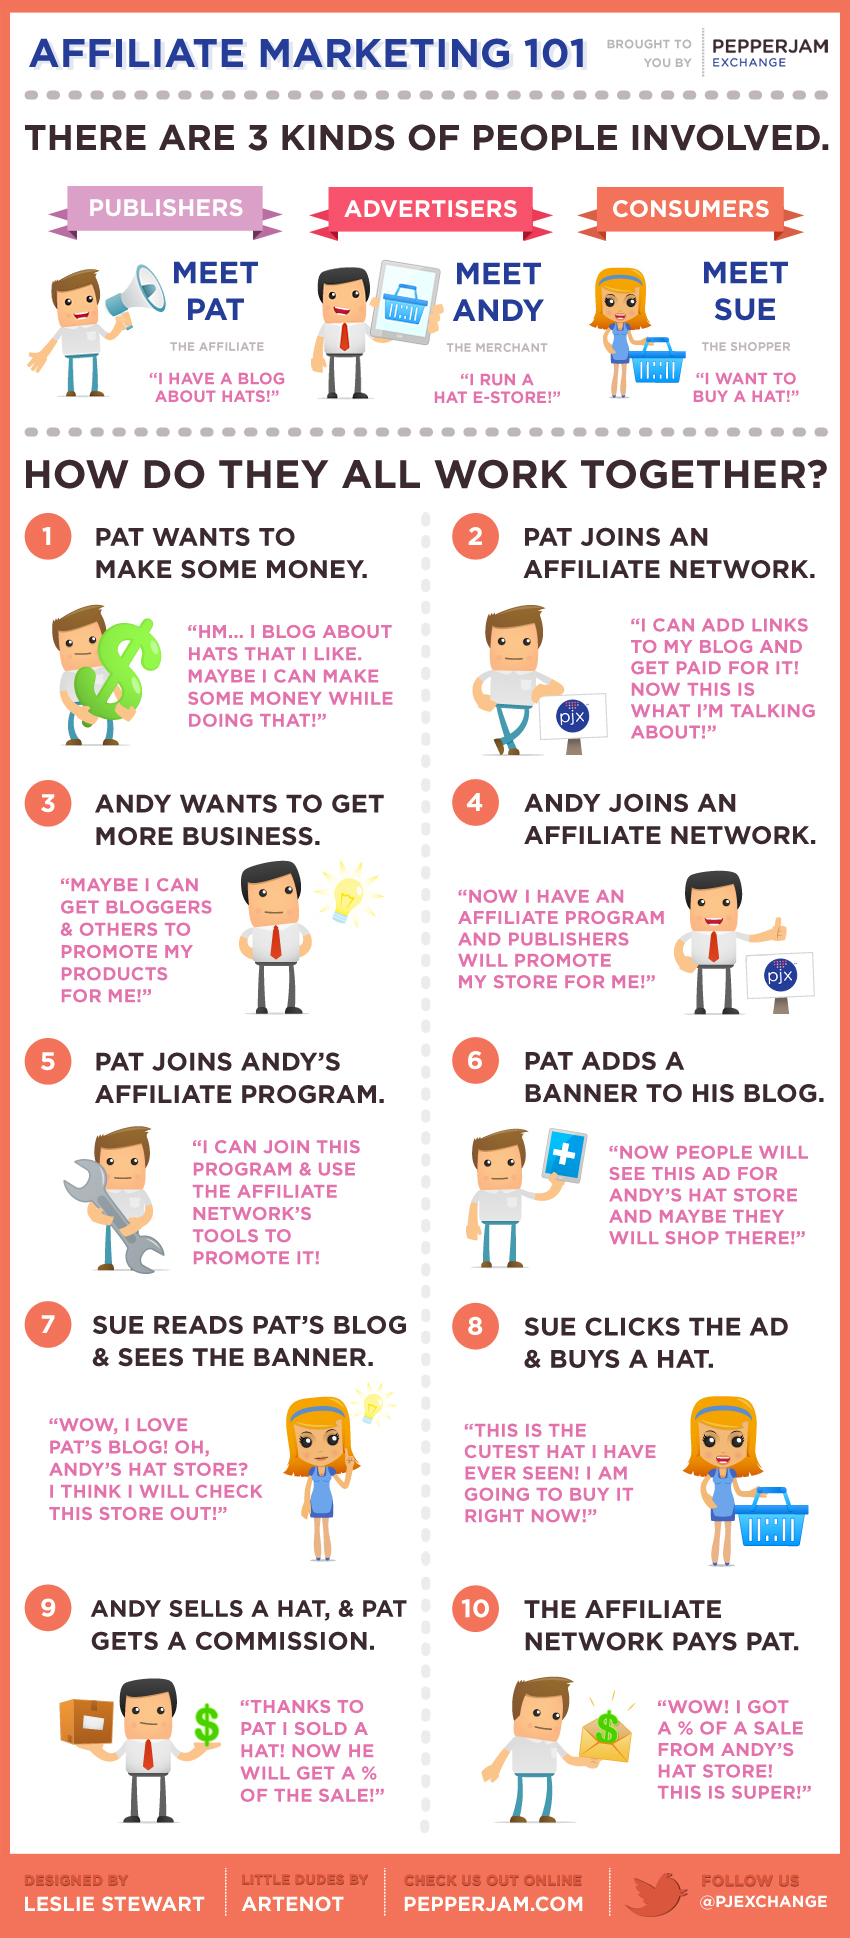 affiliate marketing 101 visually